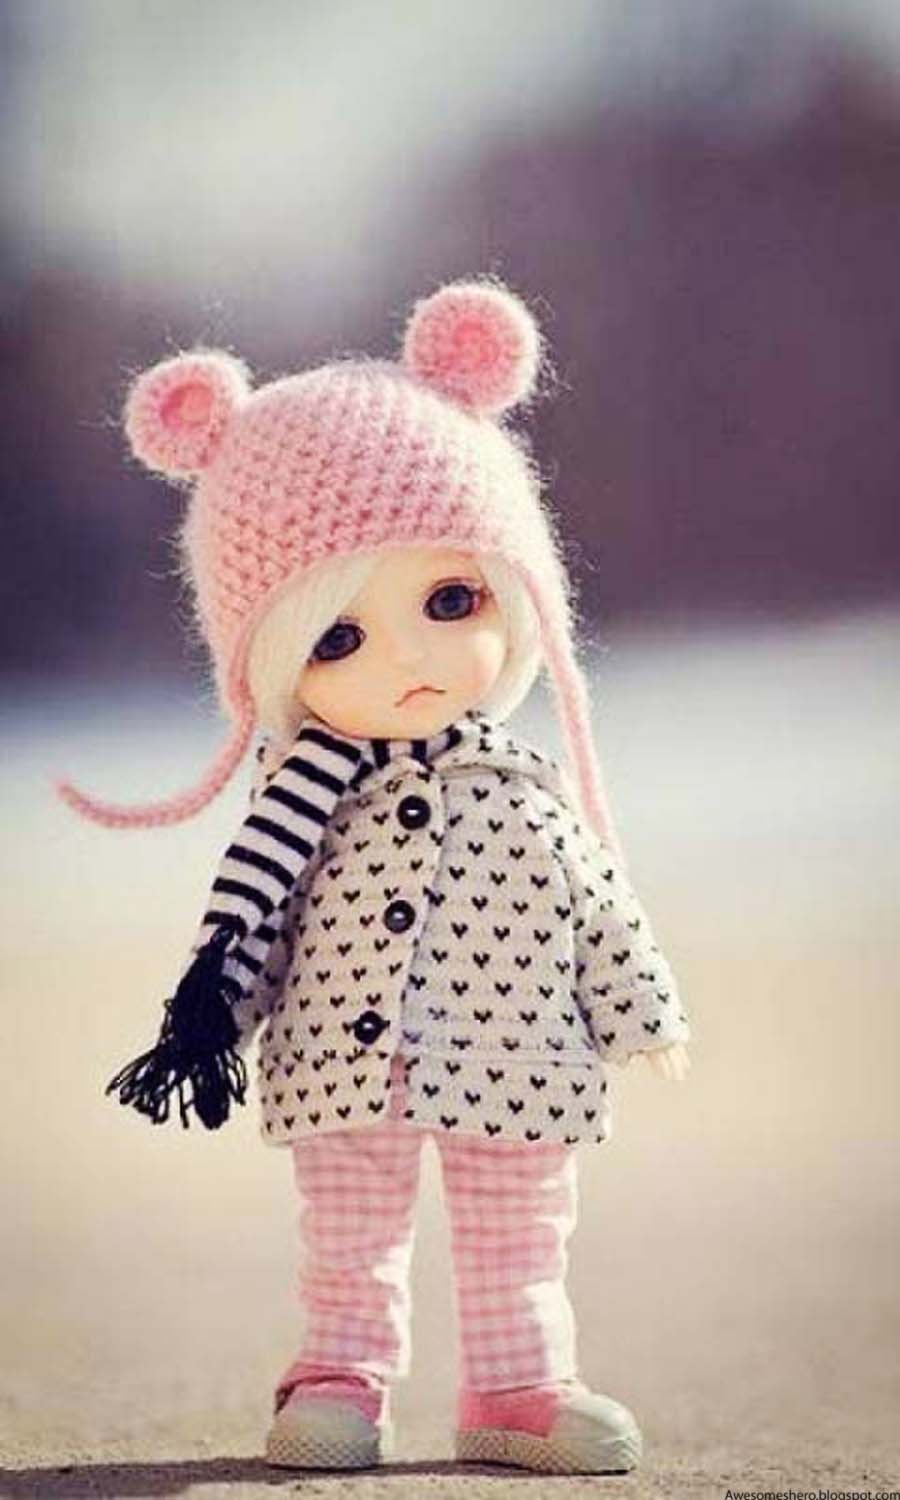 Wallpapers Download Cute Barbie Doll Beautiful Dolls Free Download Wallpapers Awesome Wallpapers